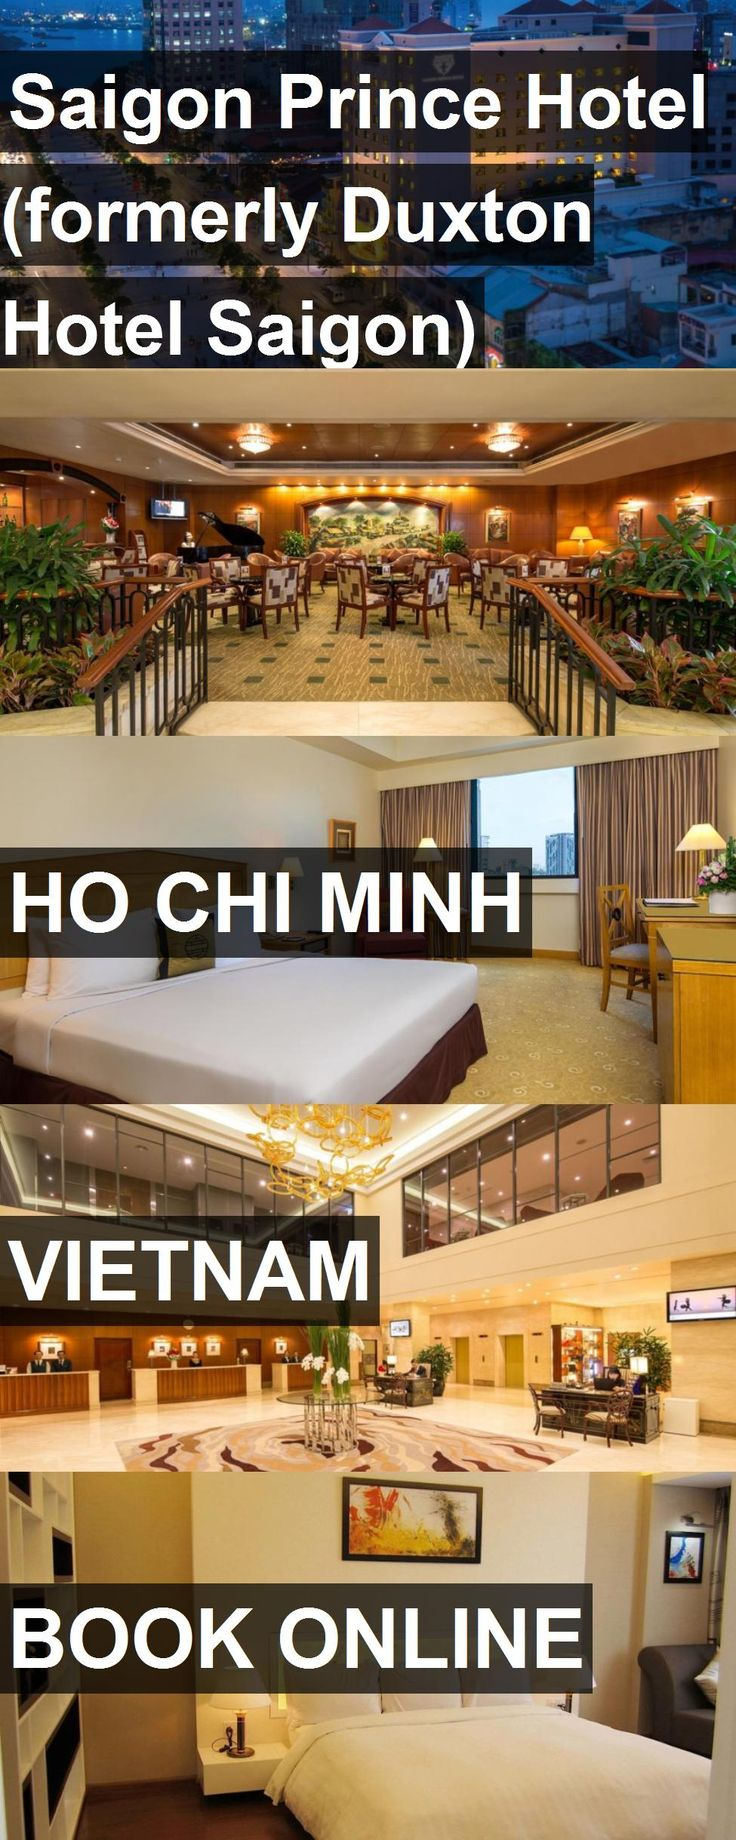 Hotel Saigon Prince Hotel (formerly Duxton Hotel Saigon) in Ho Chi Minh, Vietnam. For more information, photos, reviews and best prices please follow the link. #Vietnam #HoChiMinh #SaigonPrinceHotel(formerlyDuxtonHotelSaigon) #hotel #travel #vacation